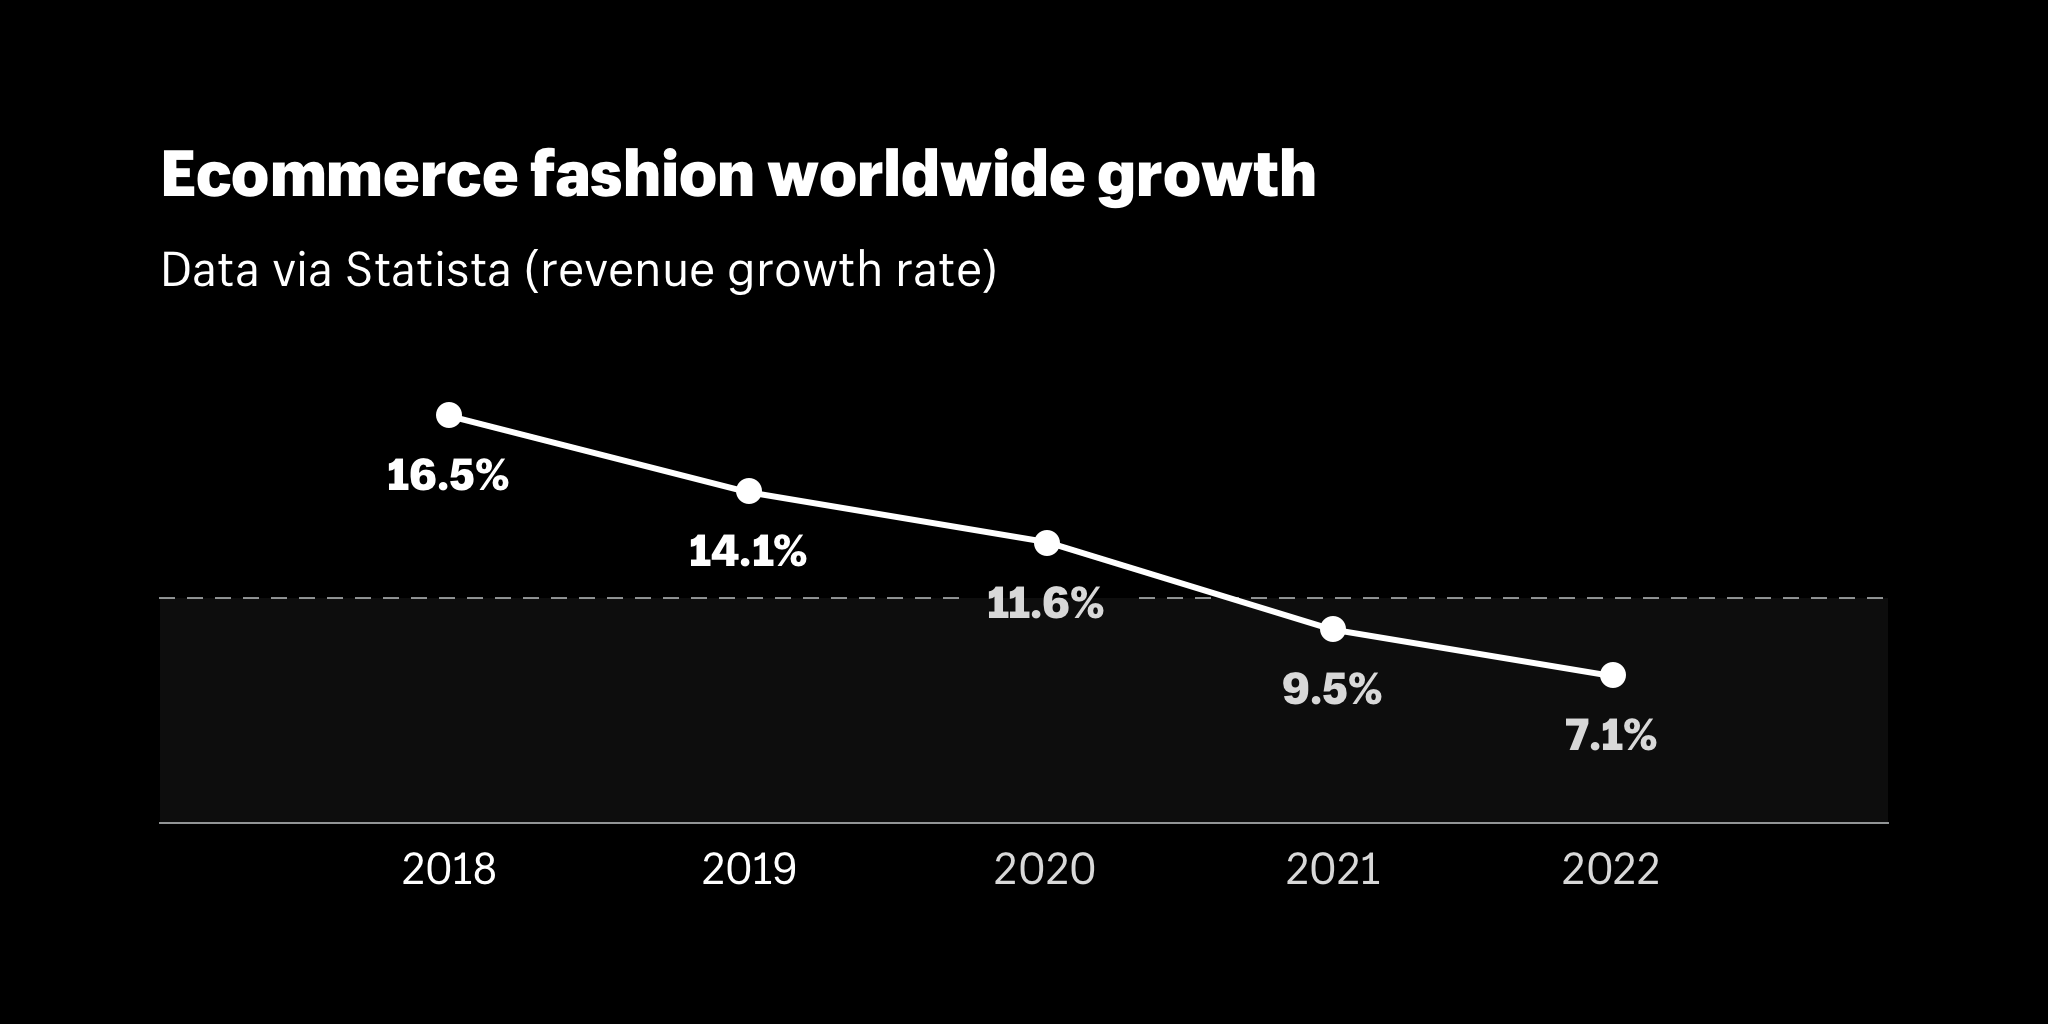 Ecommerce fashion worldwide growth